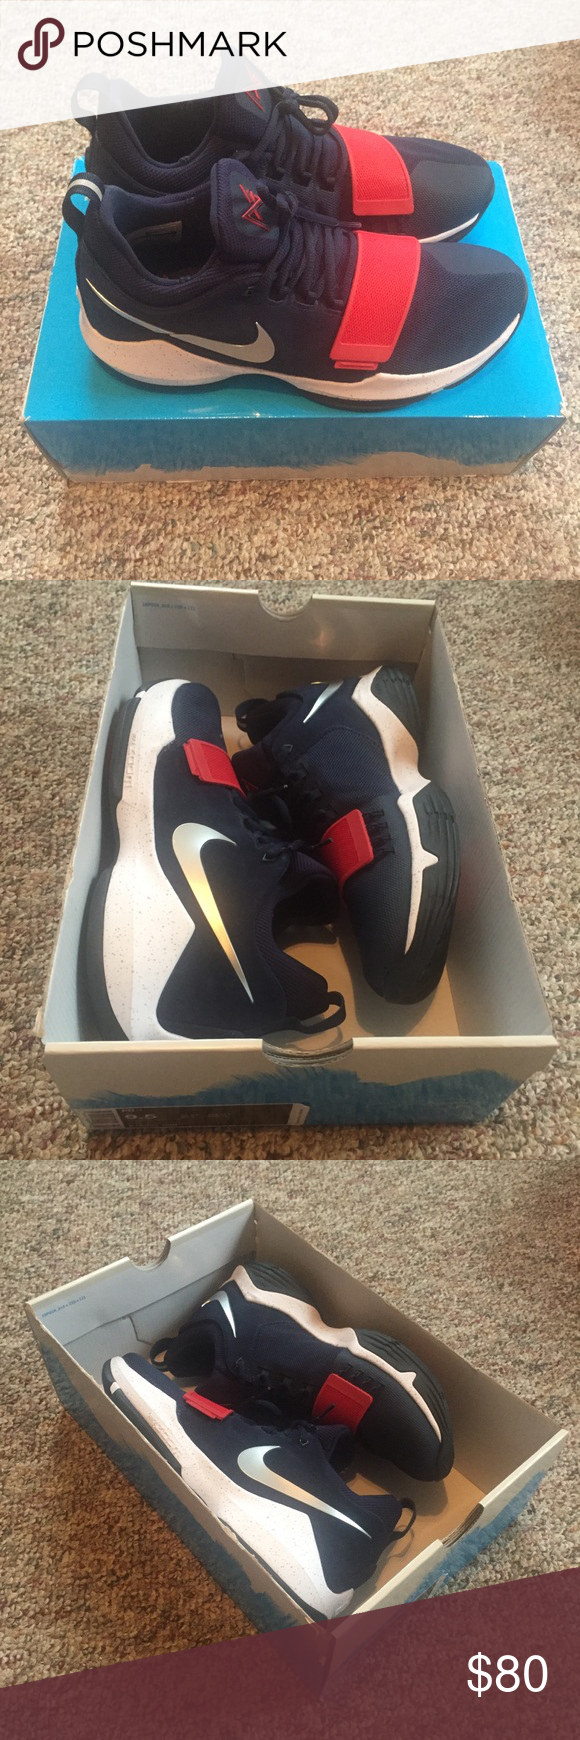 Nike PG1 USA Olympics Shoes Men's 9.5 NWB PG 1